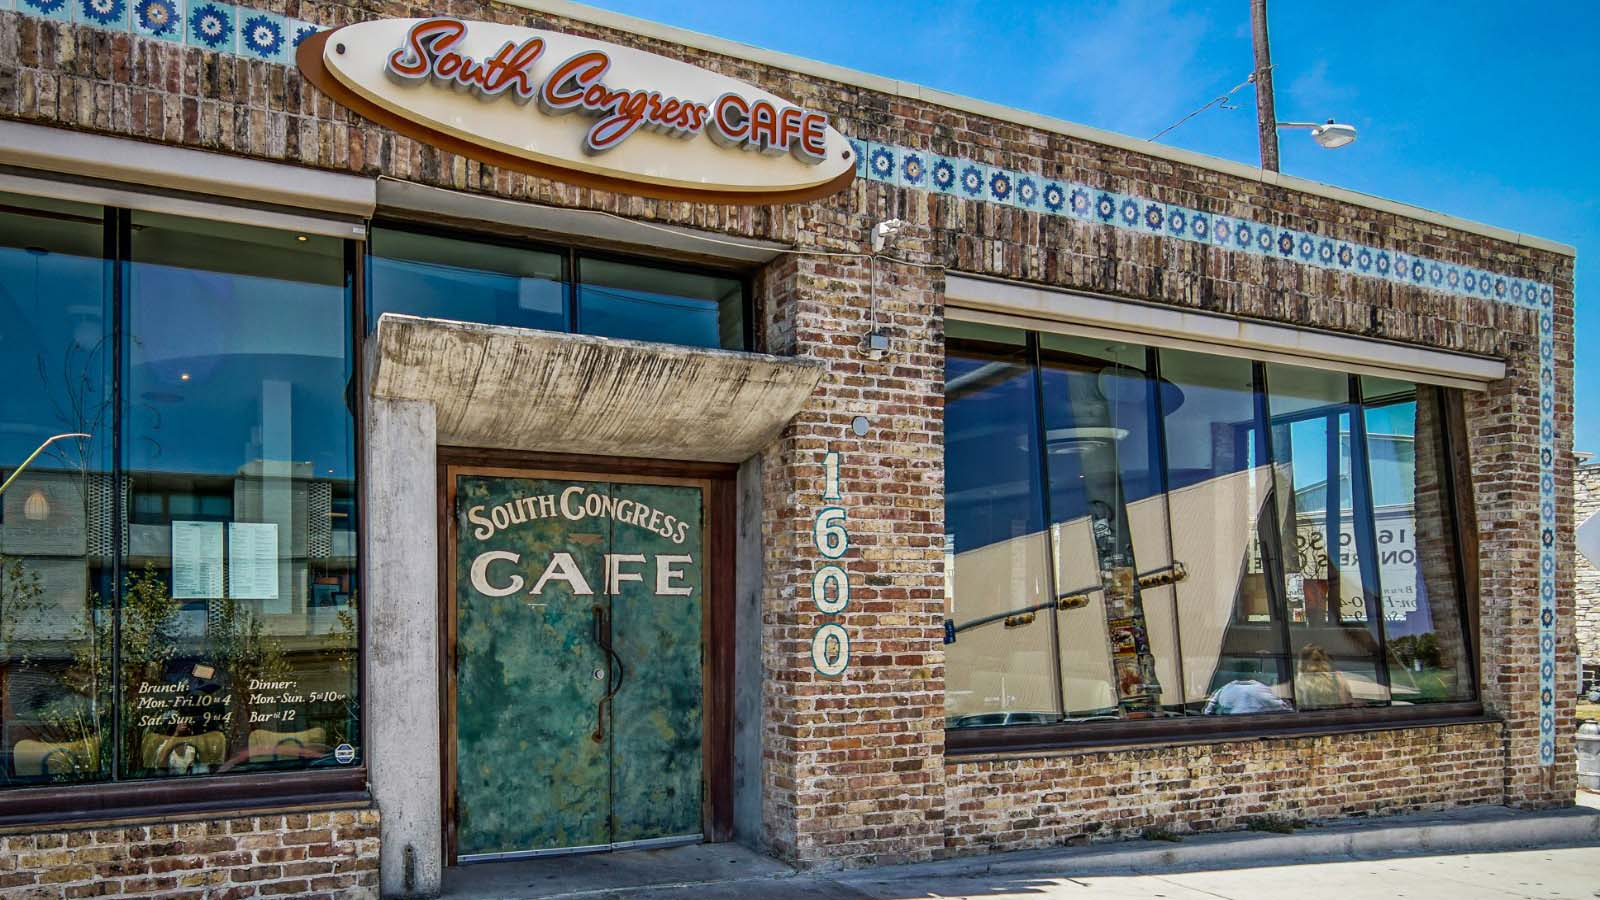 Image of South Congress Cafe